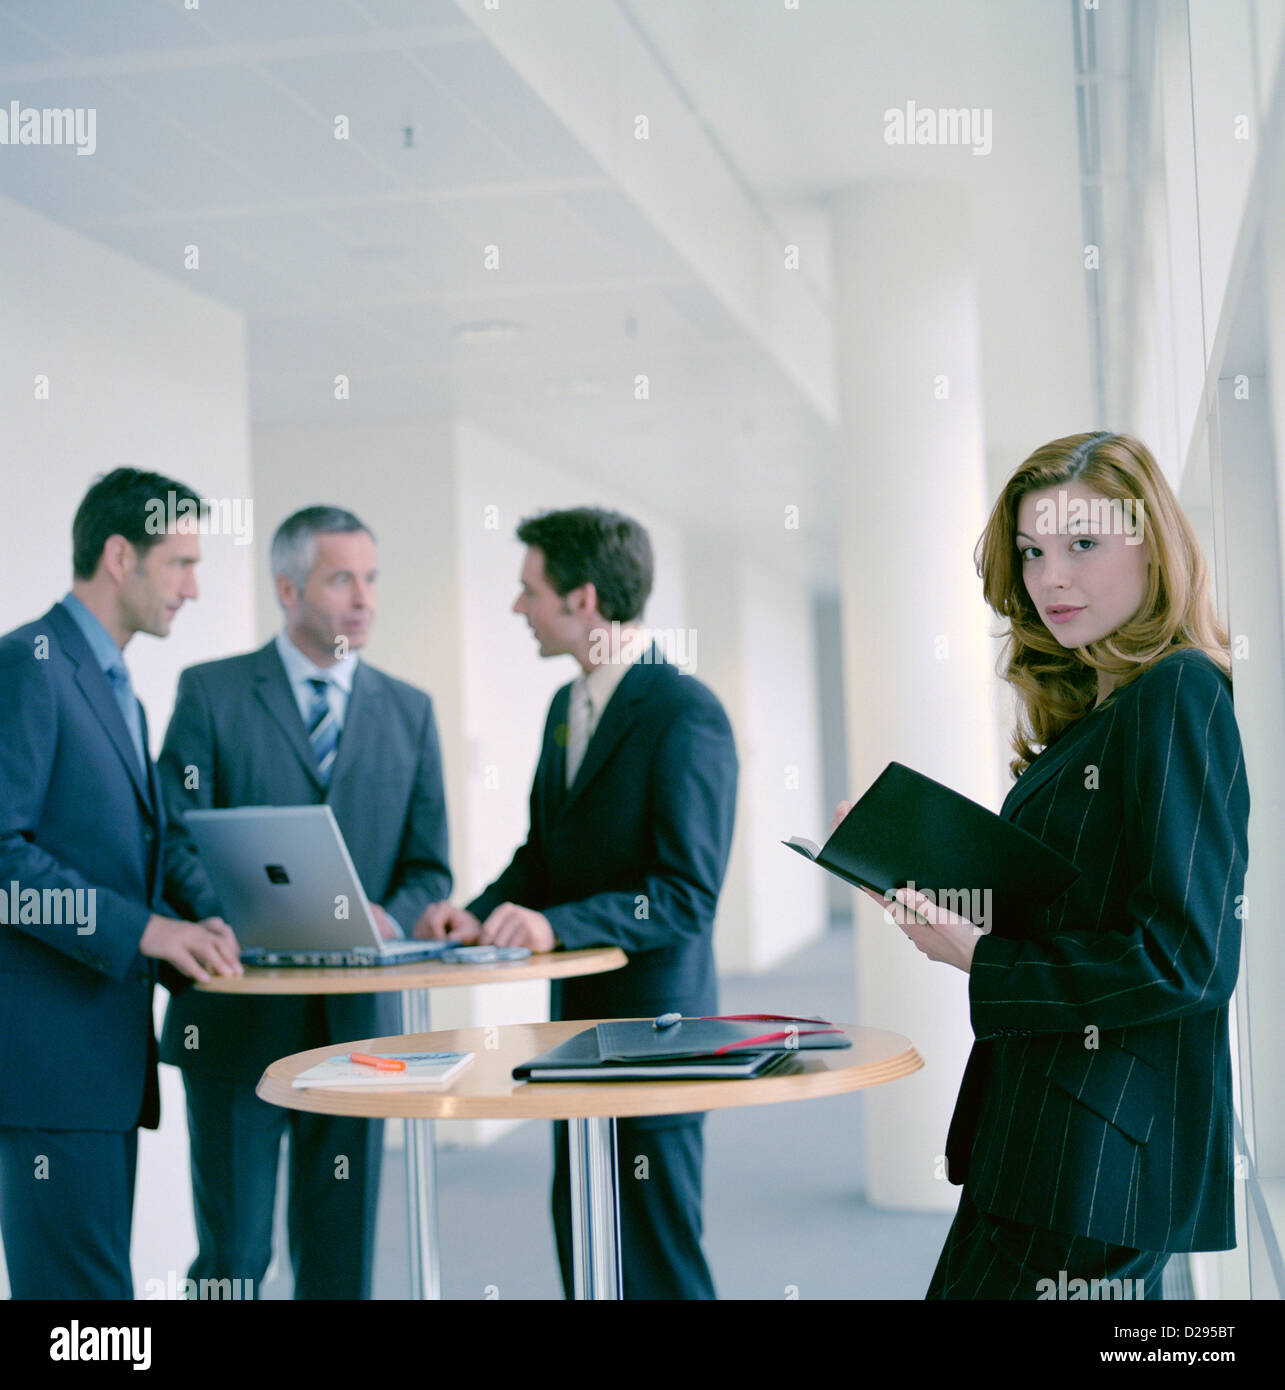 business people man woman using laptop License free except ads and outdoor billboards Stock Photo